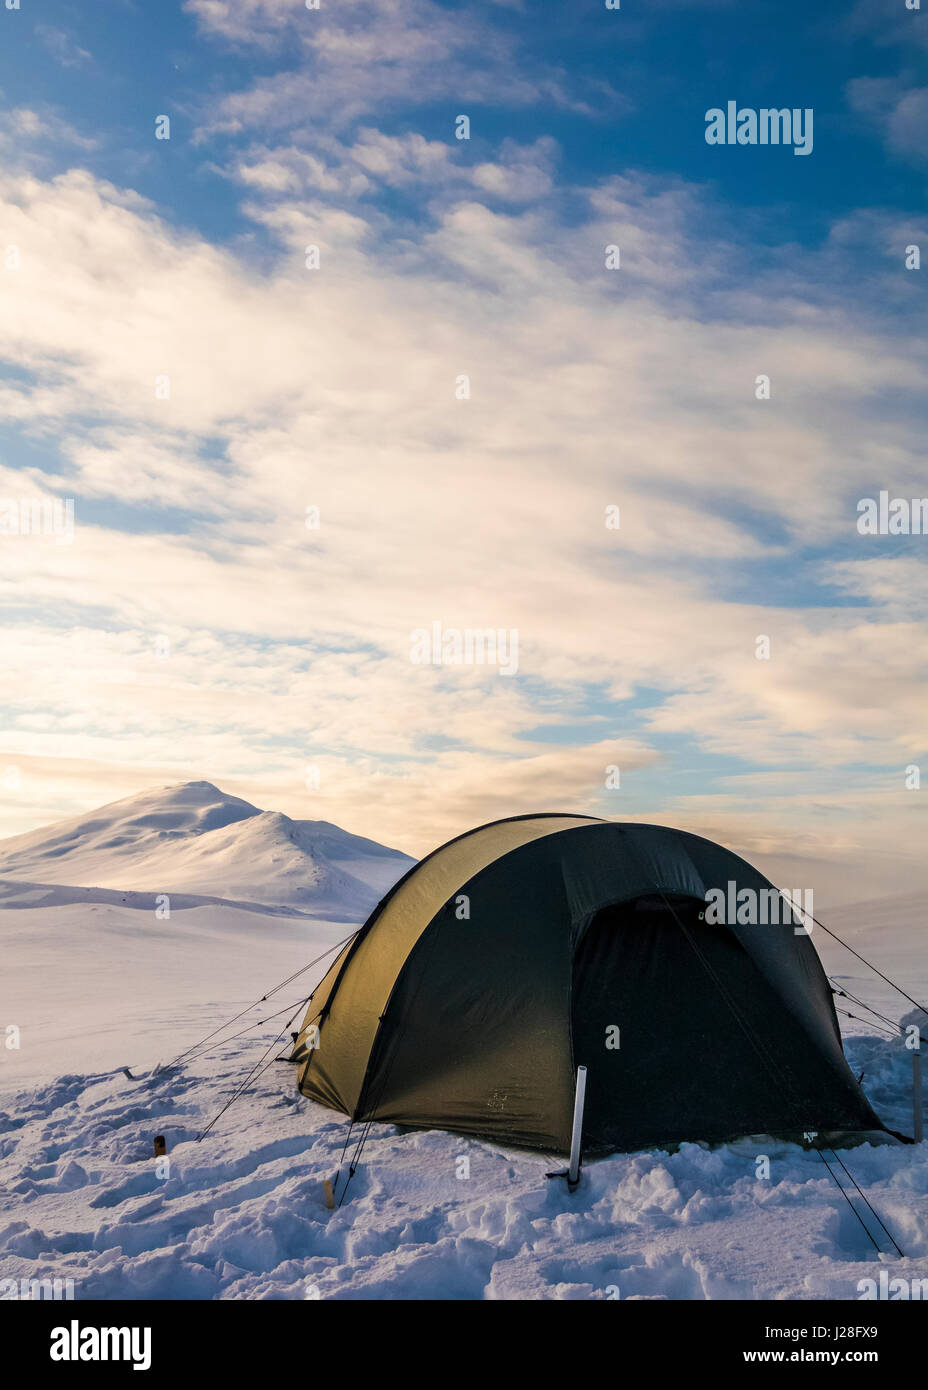 Tunnel tent in Sarek national park - Stock Image